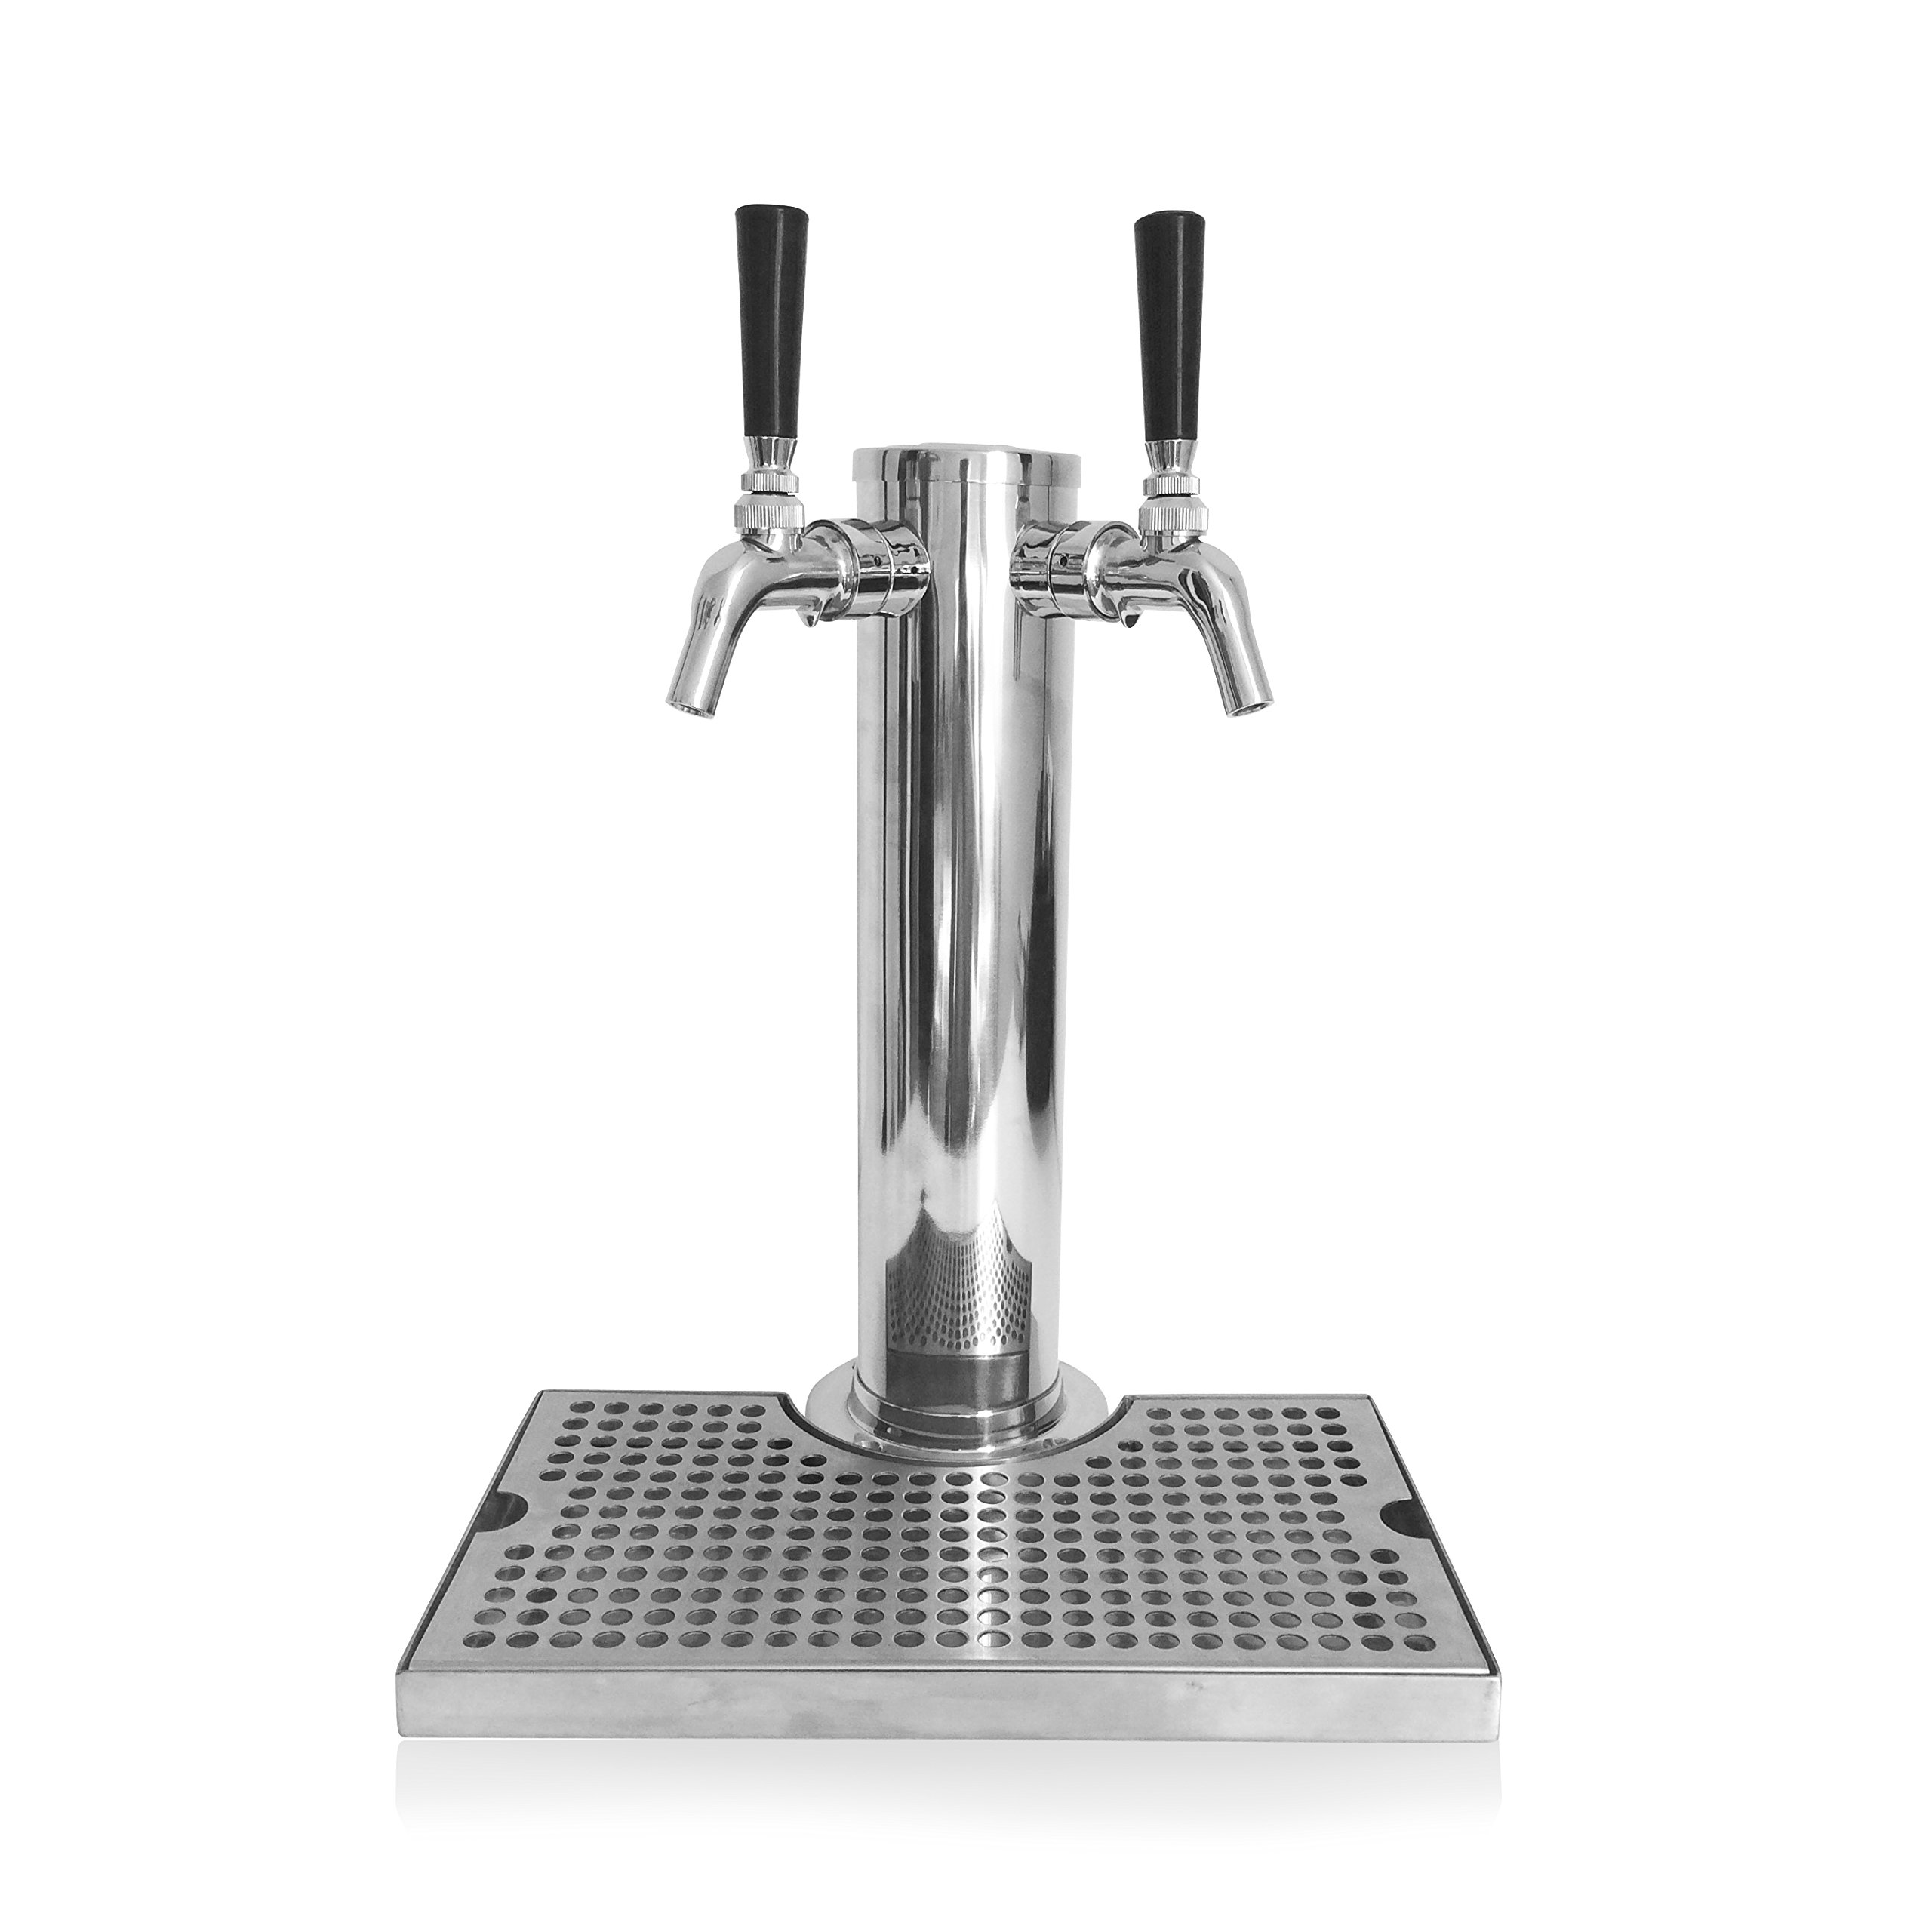 Stainless Steel Kegerator Tower Tap: Conversion Kit, Double 2 Perlick Style Faucets, 3'' Diameter - 2 Tap Draft Beer Tower, Double Faucet Beer Dispenser